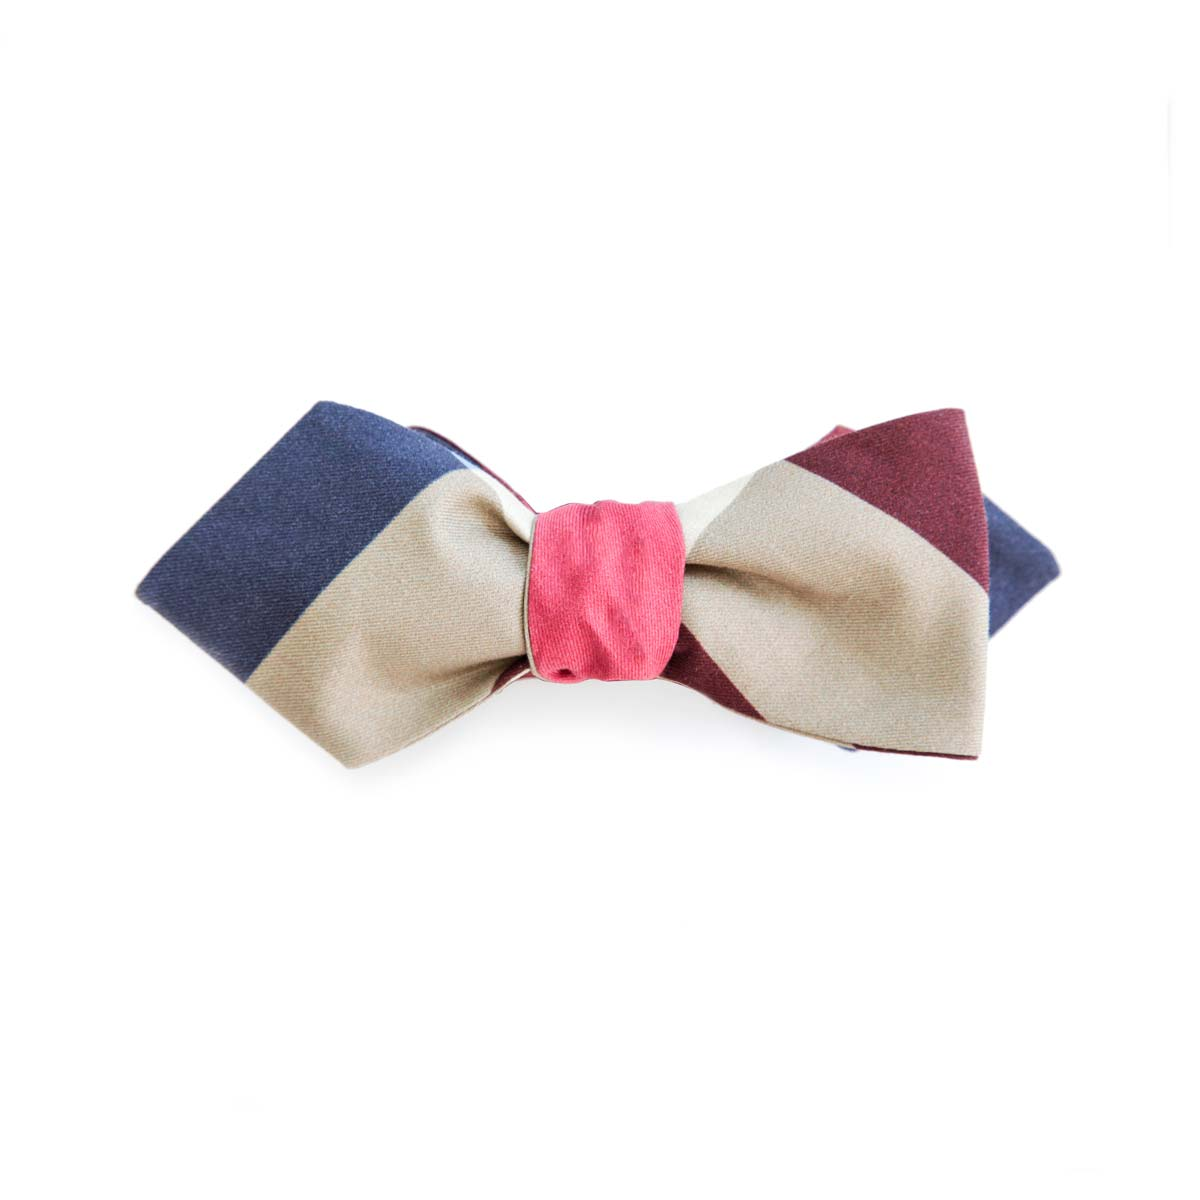 The Spring St. Bowtie